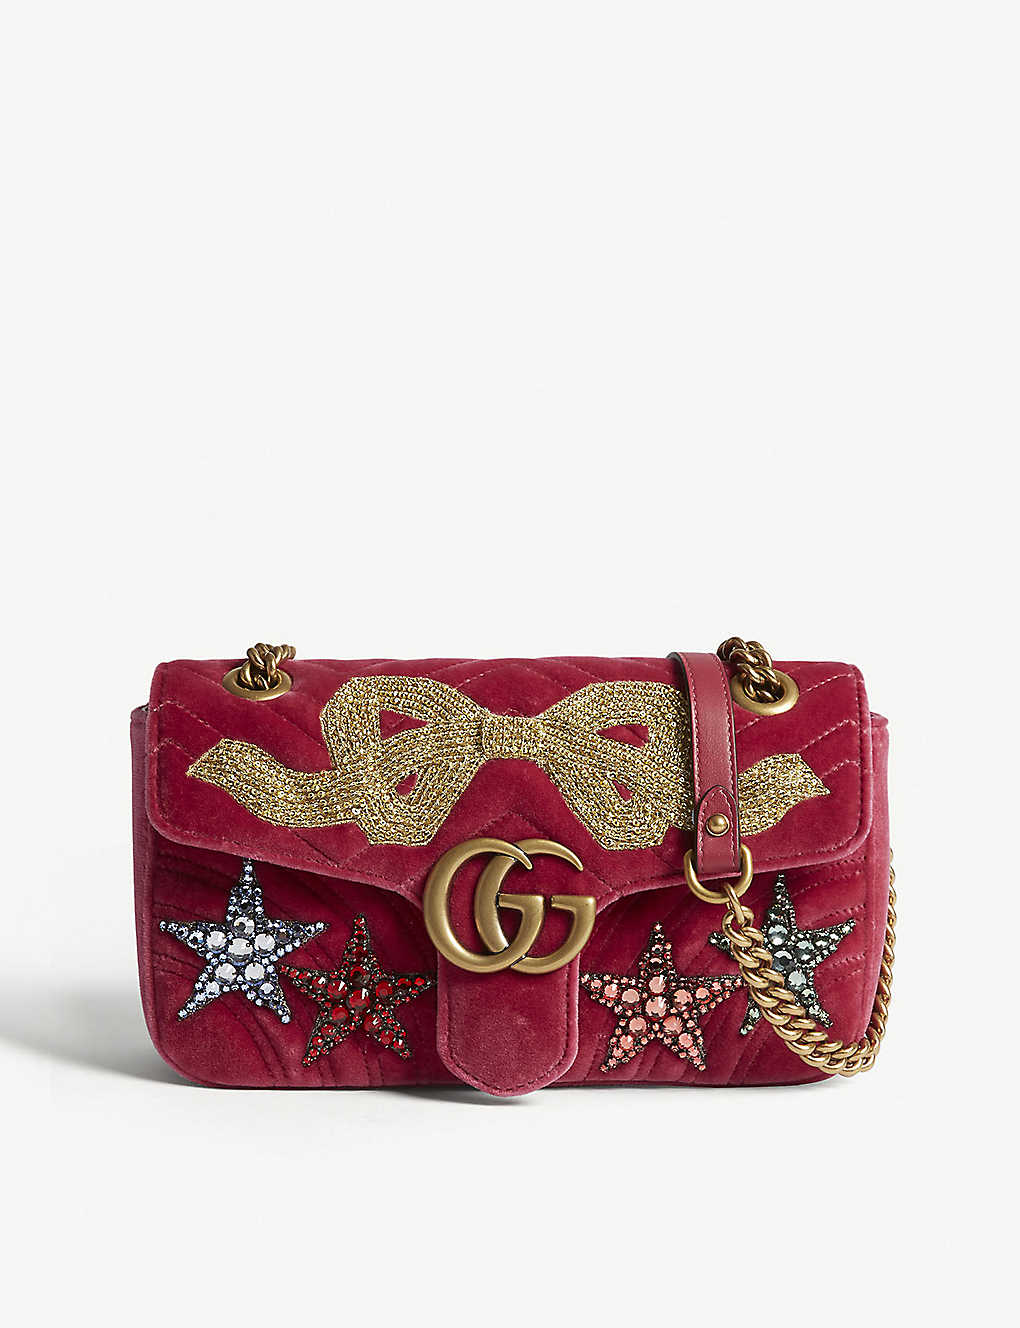 9275b3923f0 GG Marmont embellished velvet shoulder bag - Raspberry pink ...